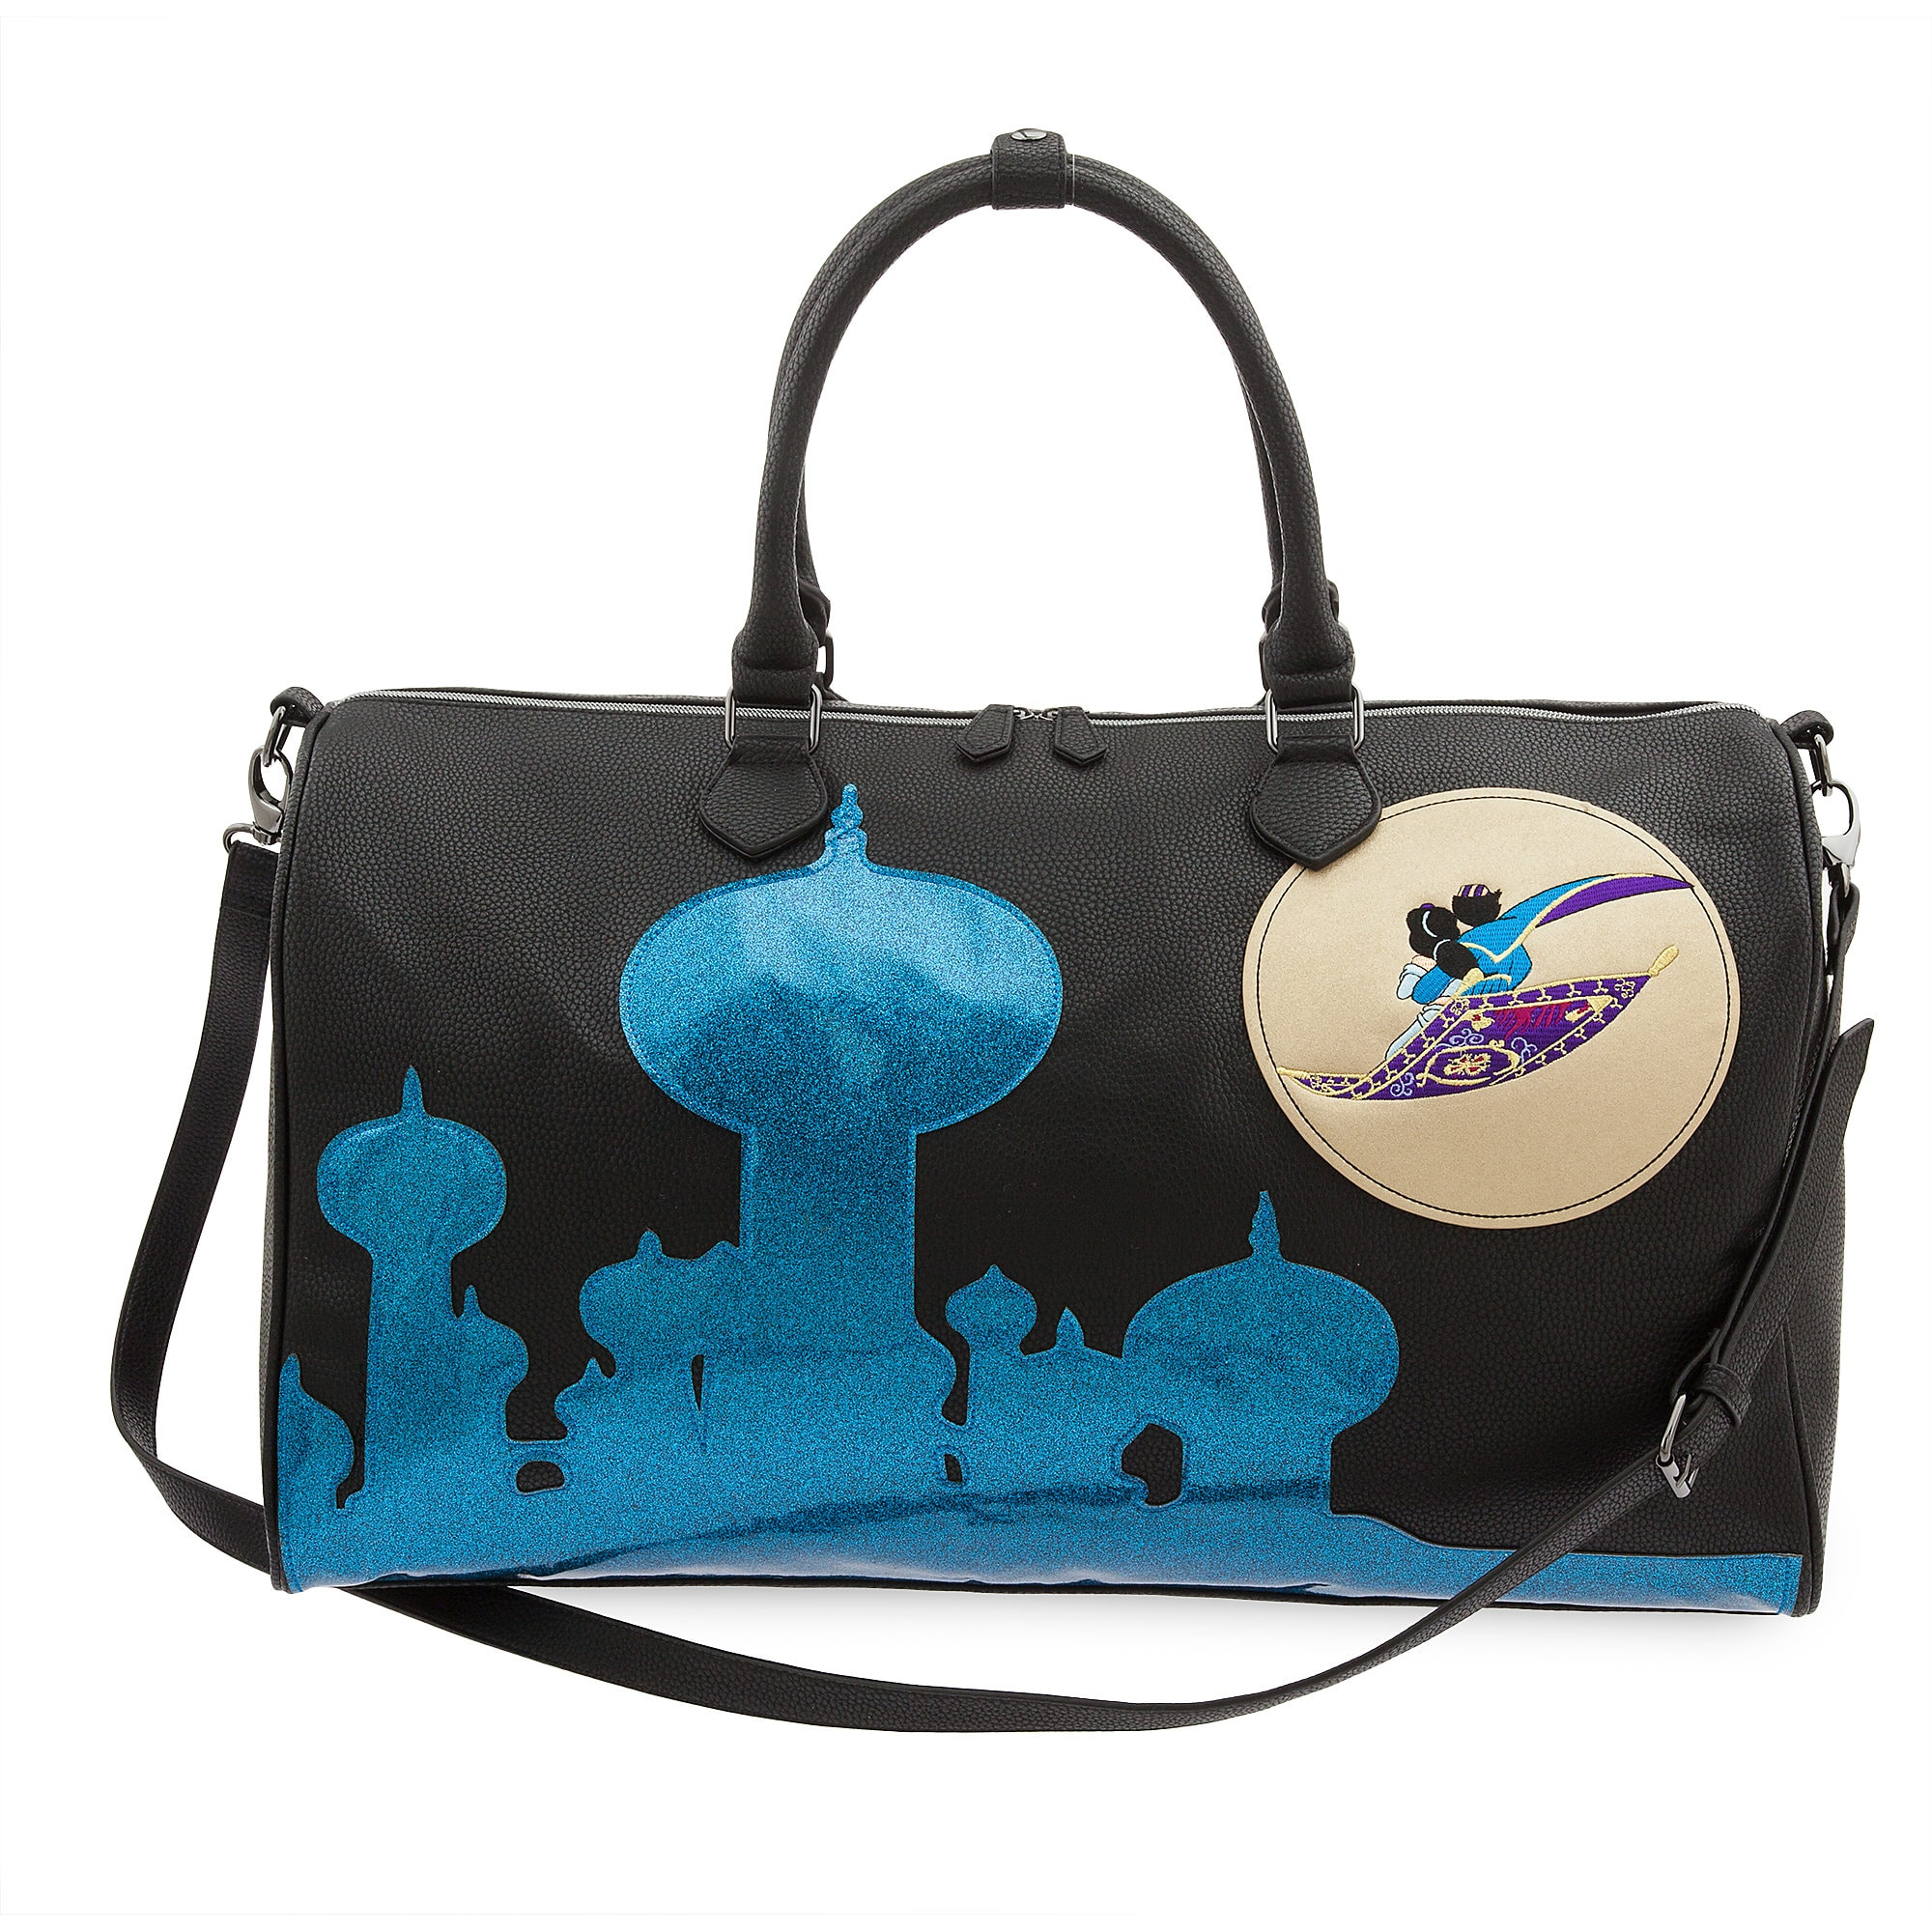 Jasmine and Aladdin Travel Bag for Adults by Danielle Nicole